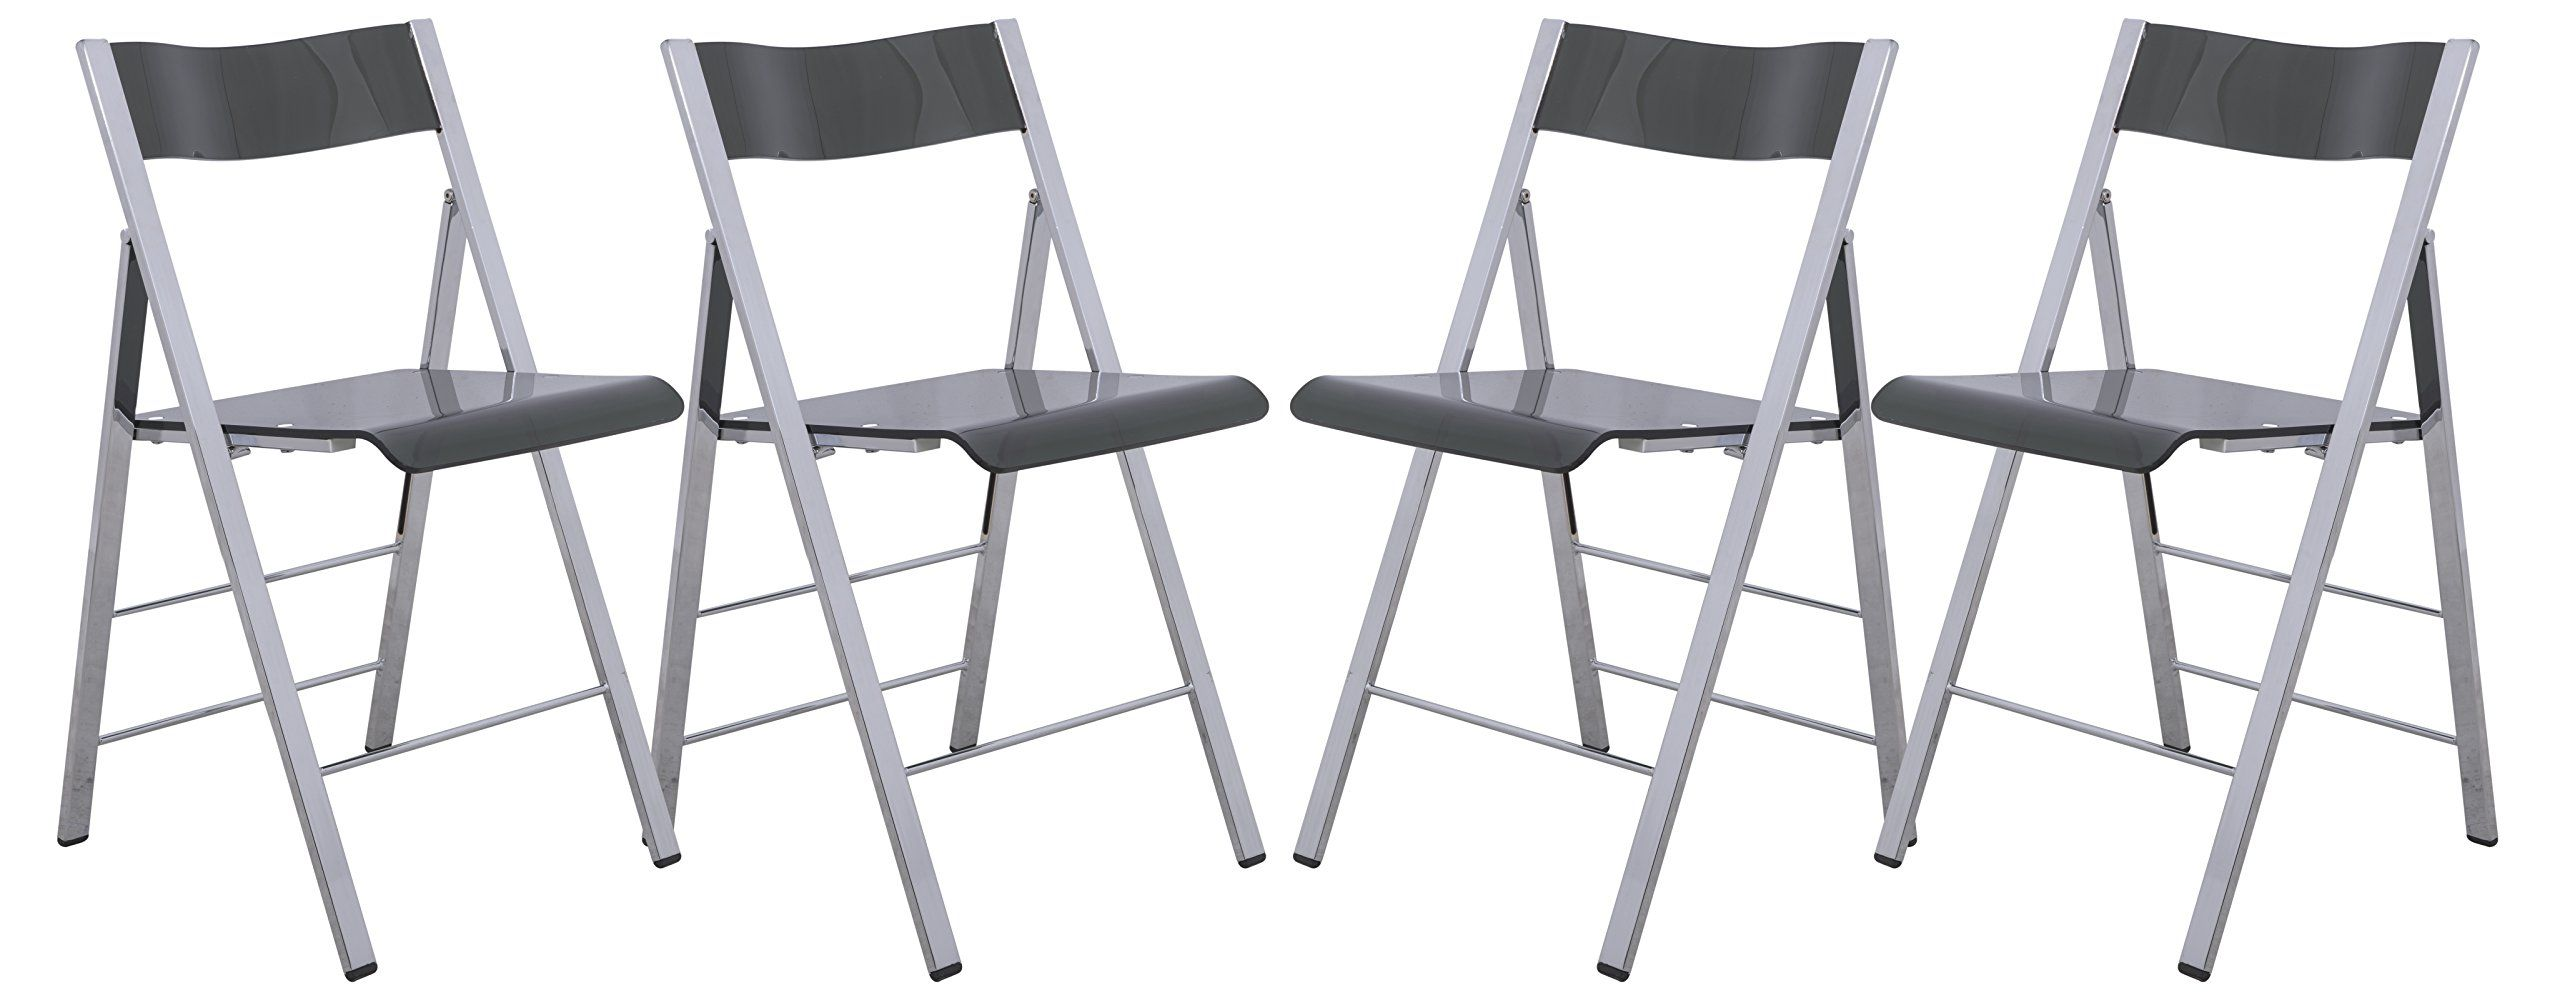 LeisureMod Menno Modern Acrylic Folding Chairs, Set Of 4    Awesome  Products Selected By